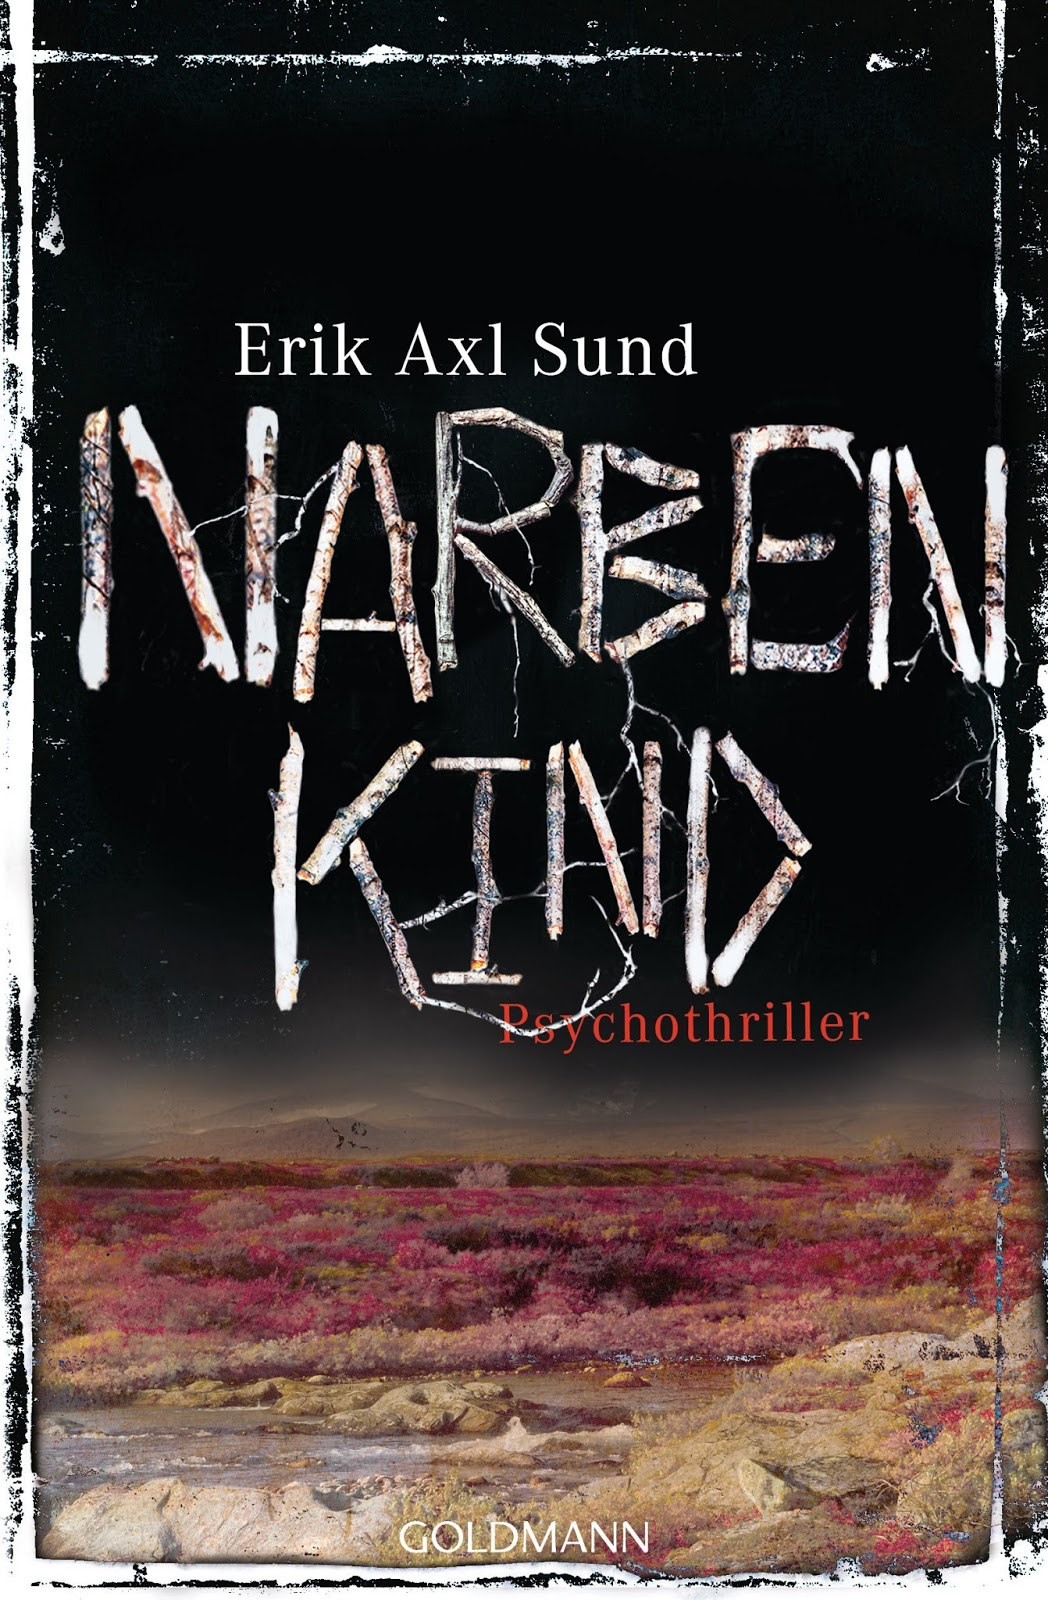 http://nothingbutn9erz.blogspot.co.at/2014/11/narbenkind-erik-axl-sund.html